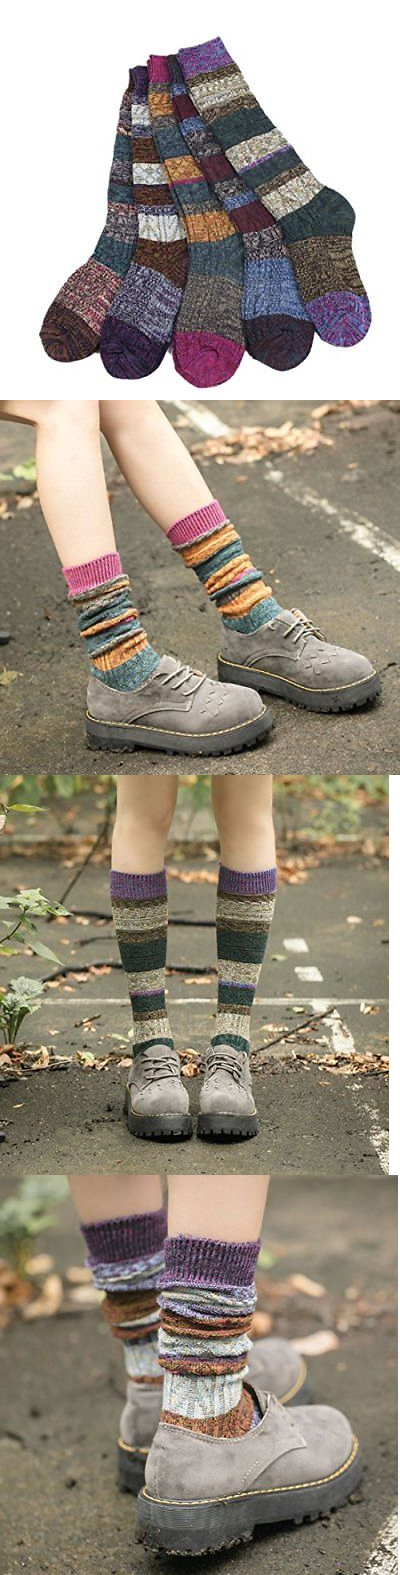 Leg Warmers 163587: Santwo Colorful Stripe Warm Wool Blend Knited Hold-Up Boot Crew Socks Leg... -> BUY IT NOW ONLY: $30.14 on eBay!